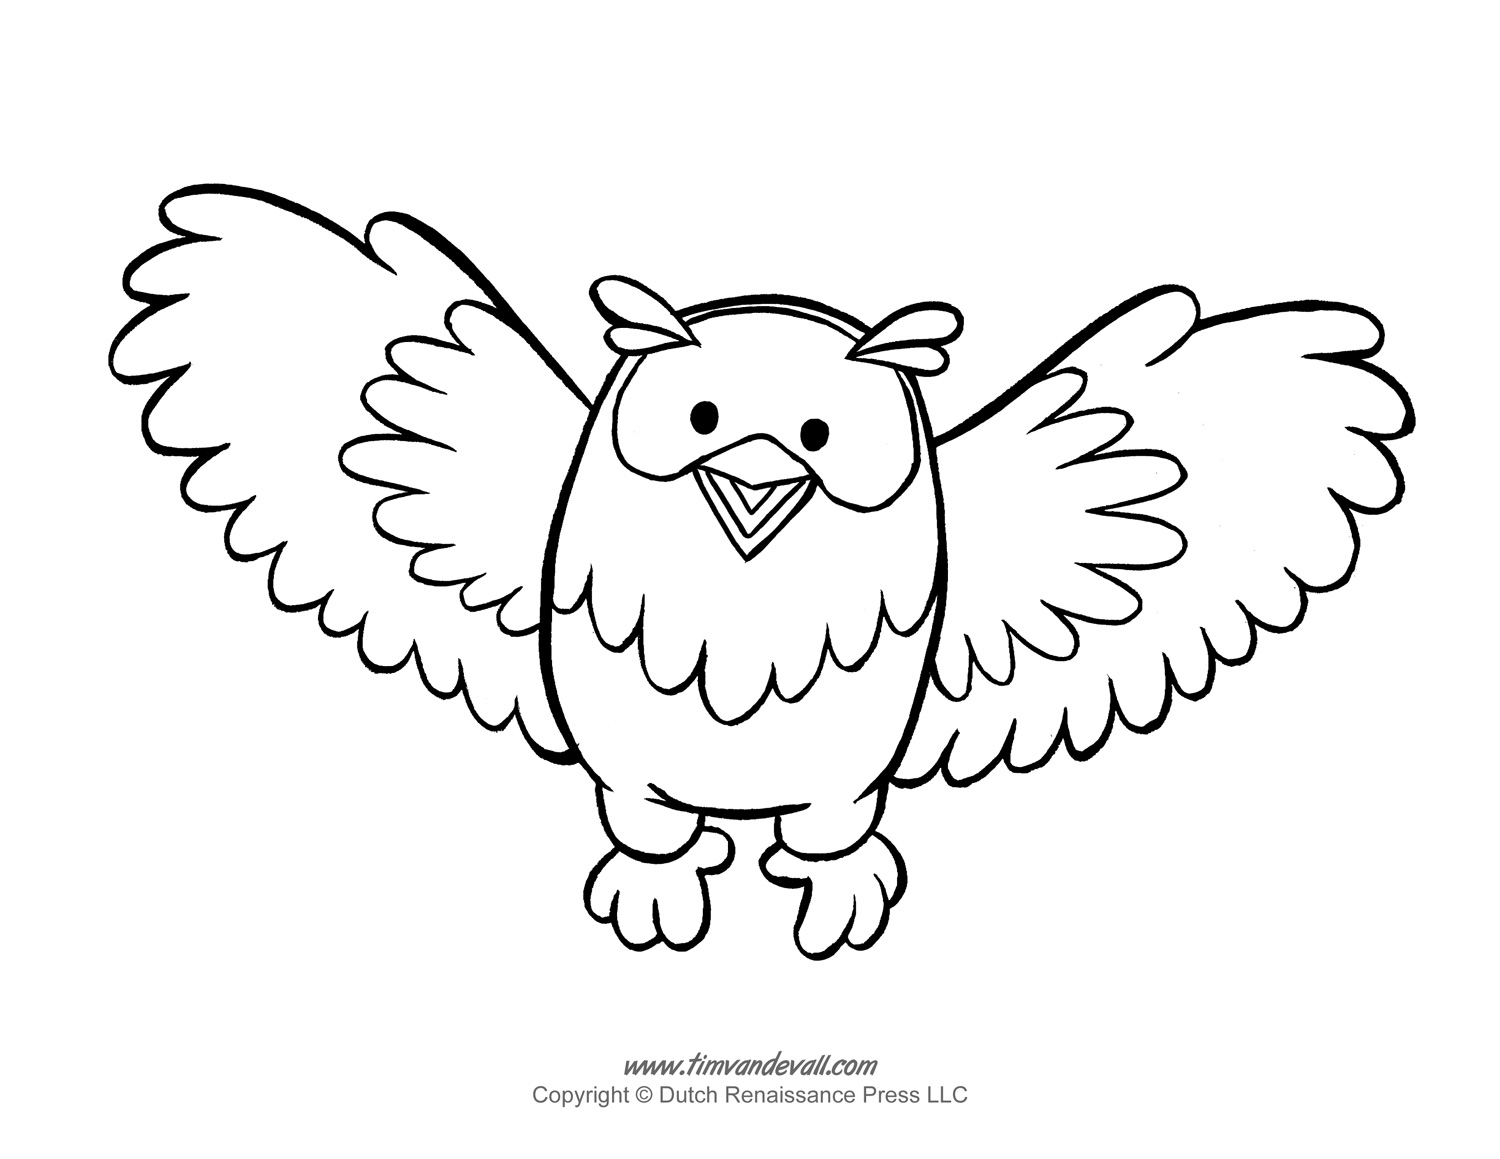 printable owl template - Acur.lunamedia.co